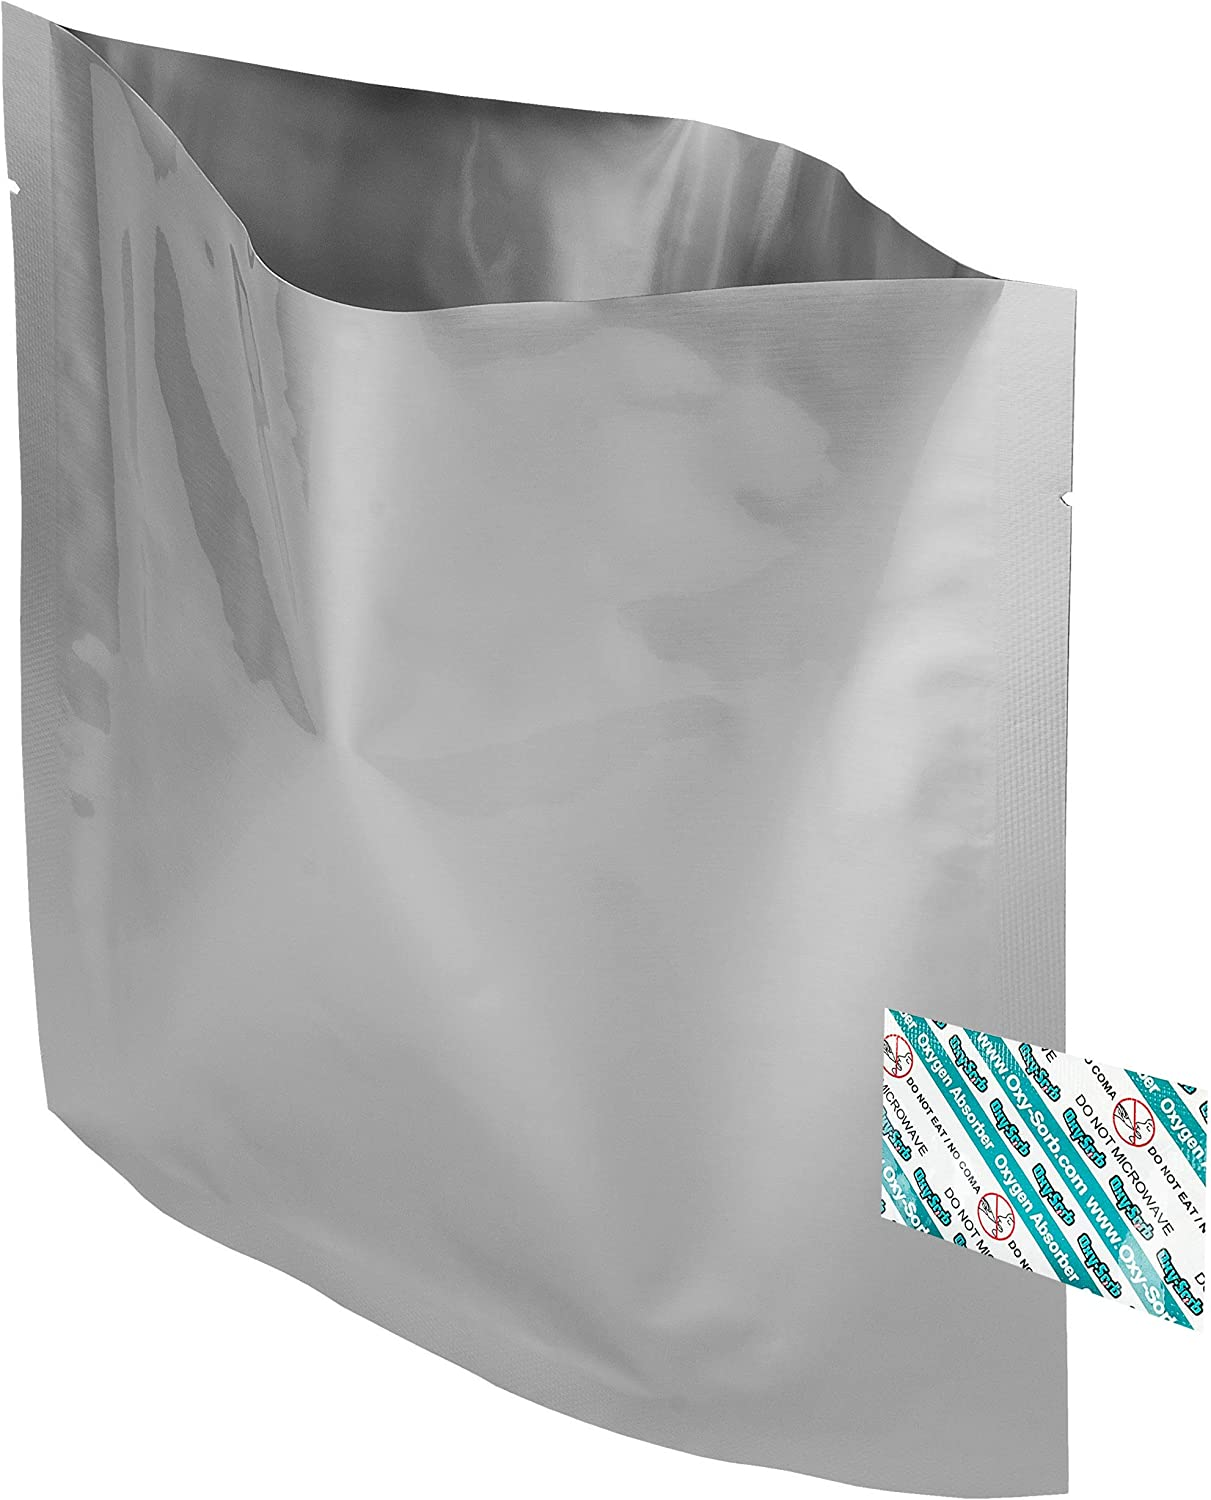 100 - 1 Quart Mylar Bags & Oxygen Absorbers for Dried Food & Long Term Storage by Dry-Packs!